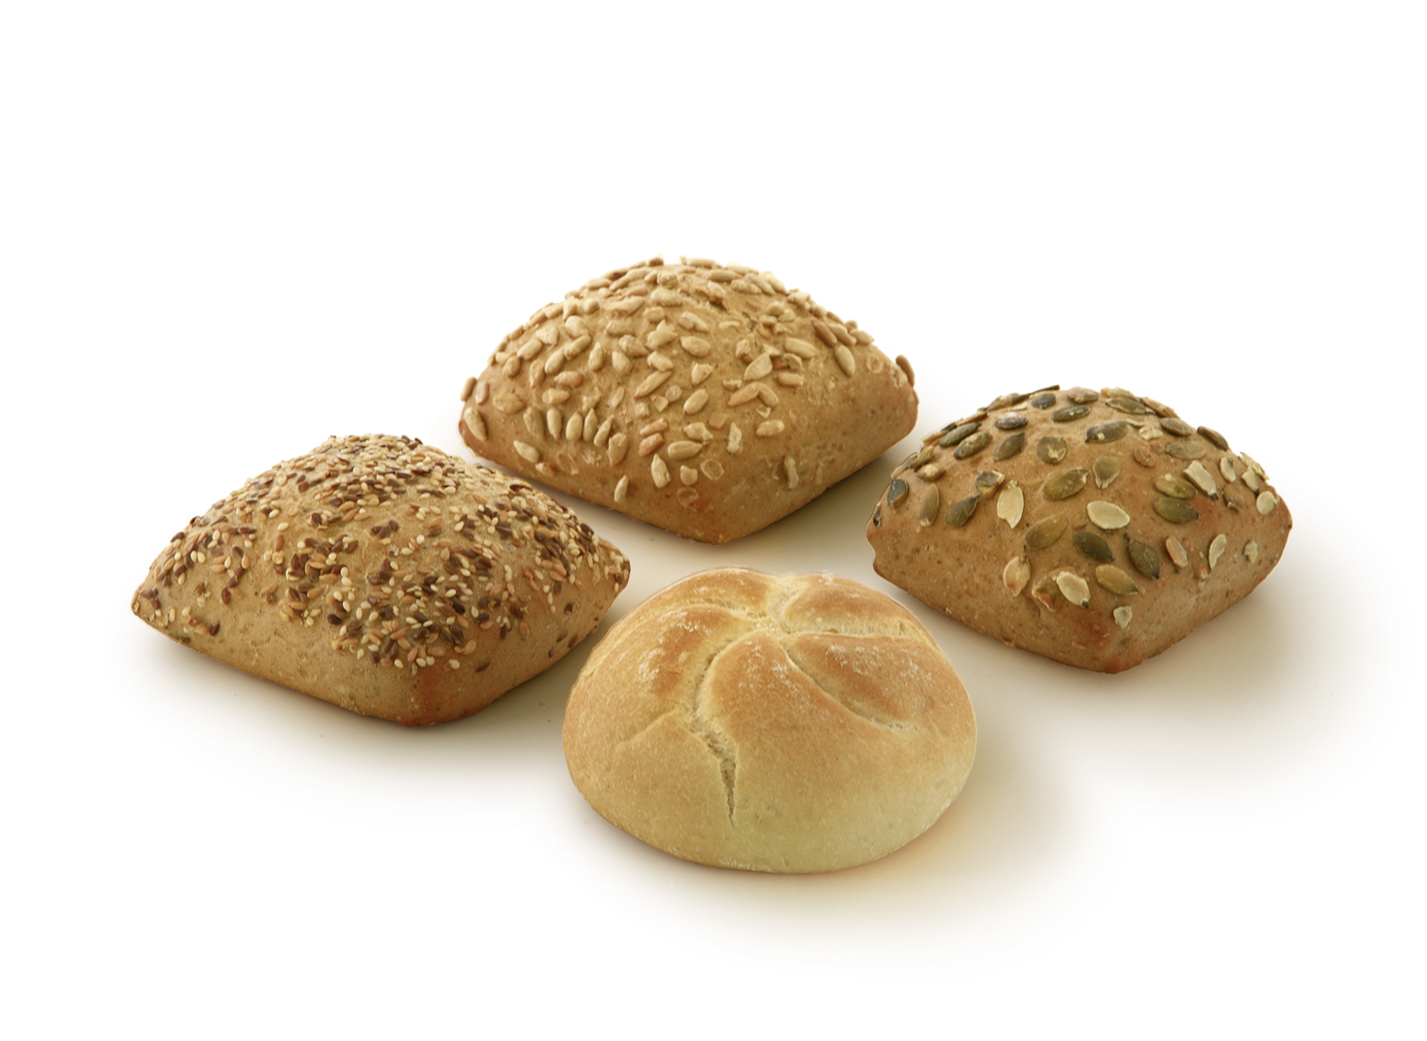 Roll mix 70/85g - XXL mix of the varieties: kaiser roll, pumpkin seed roll, multigrain roll and sunflower seed roll